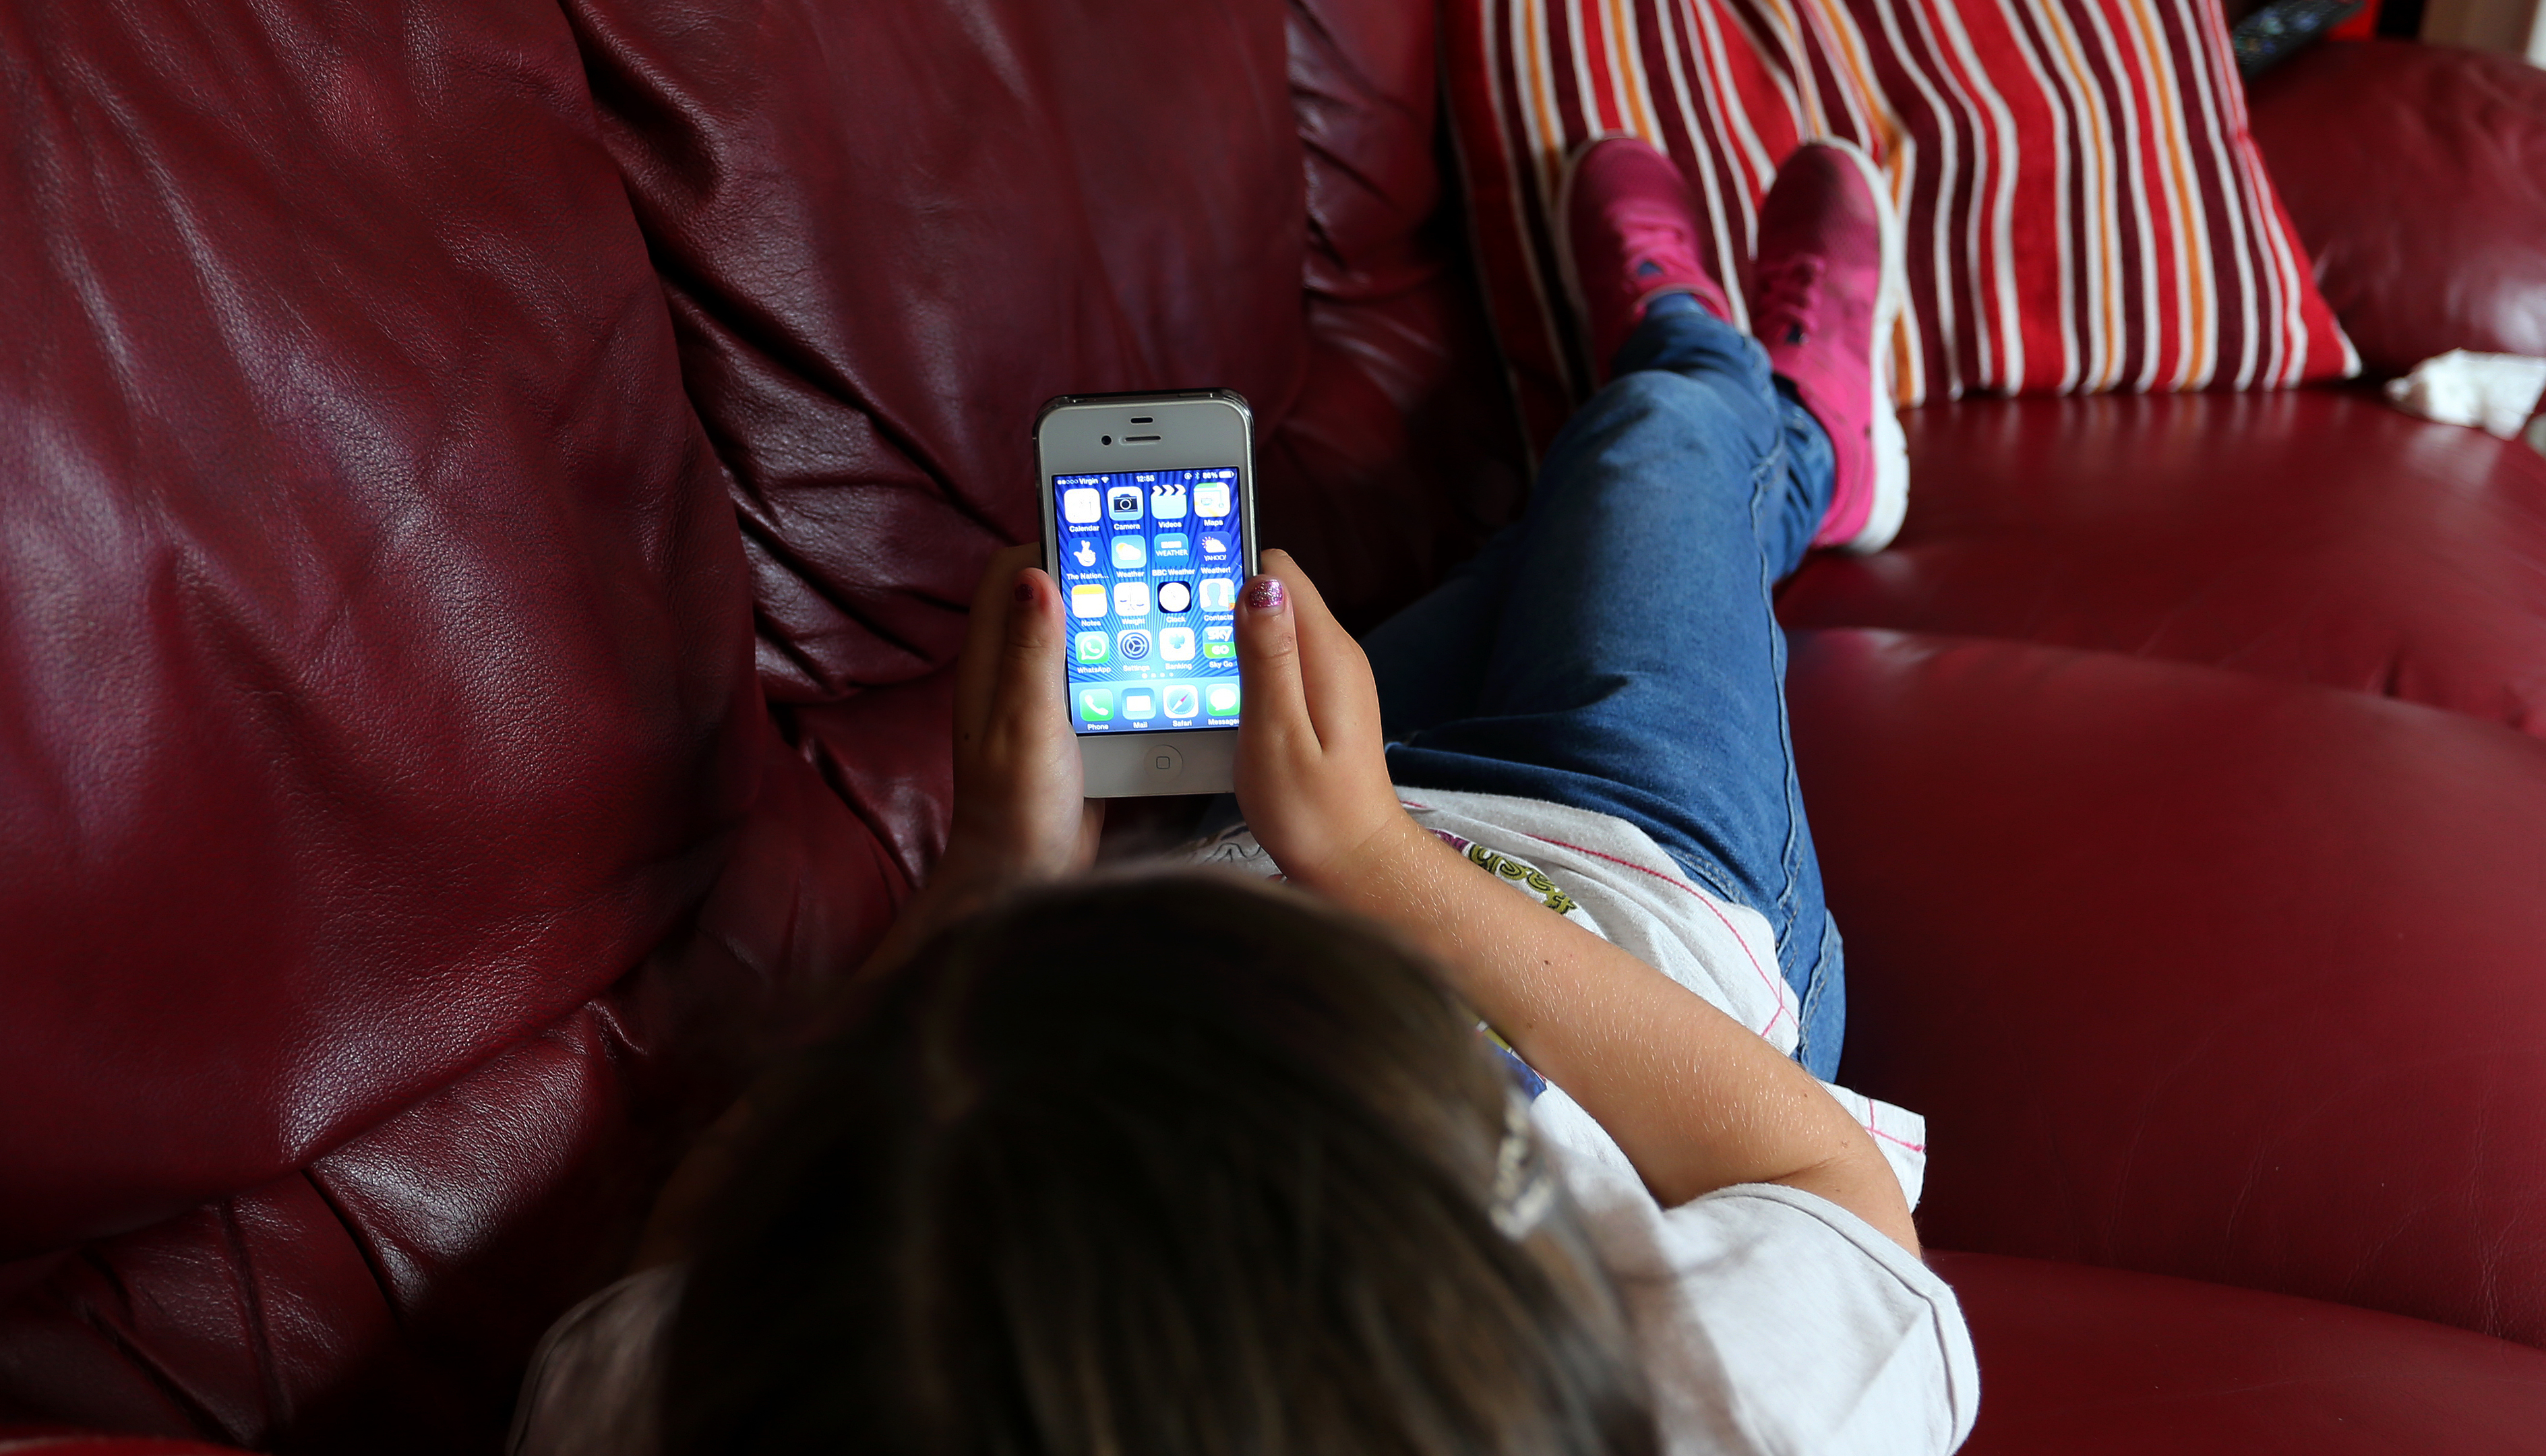 A child using an Apple iPhone smartphone.